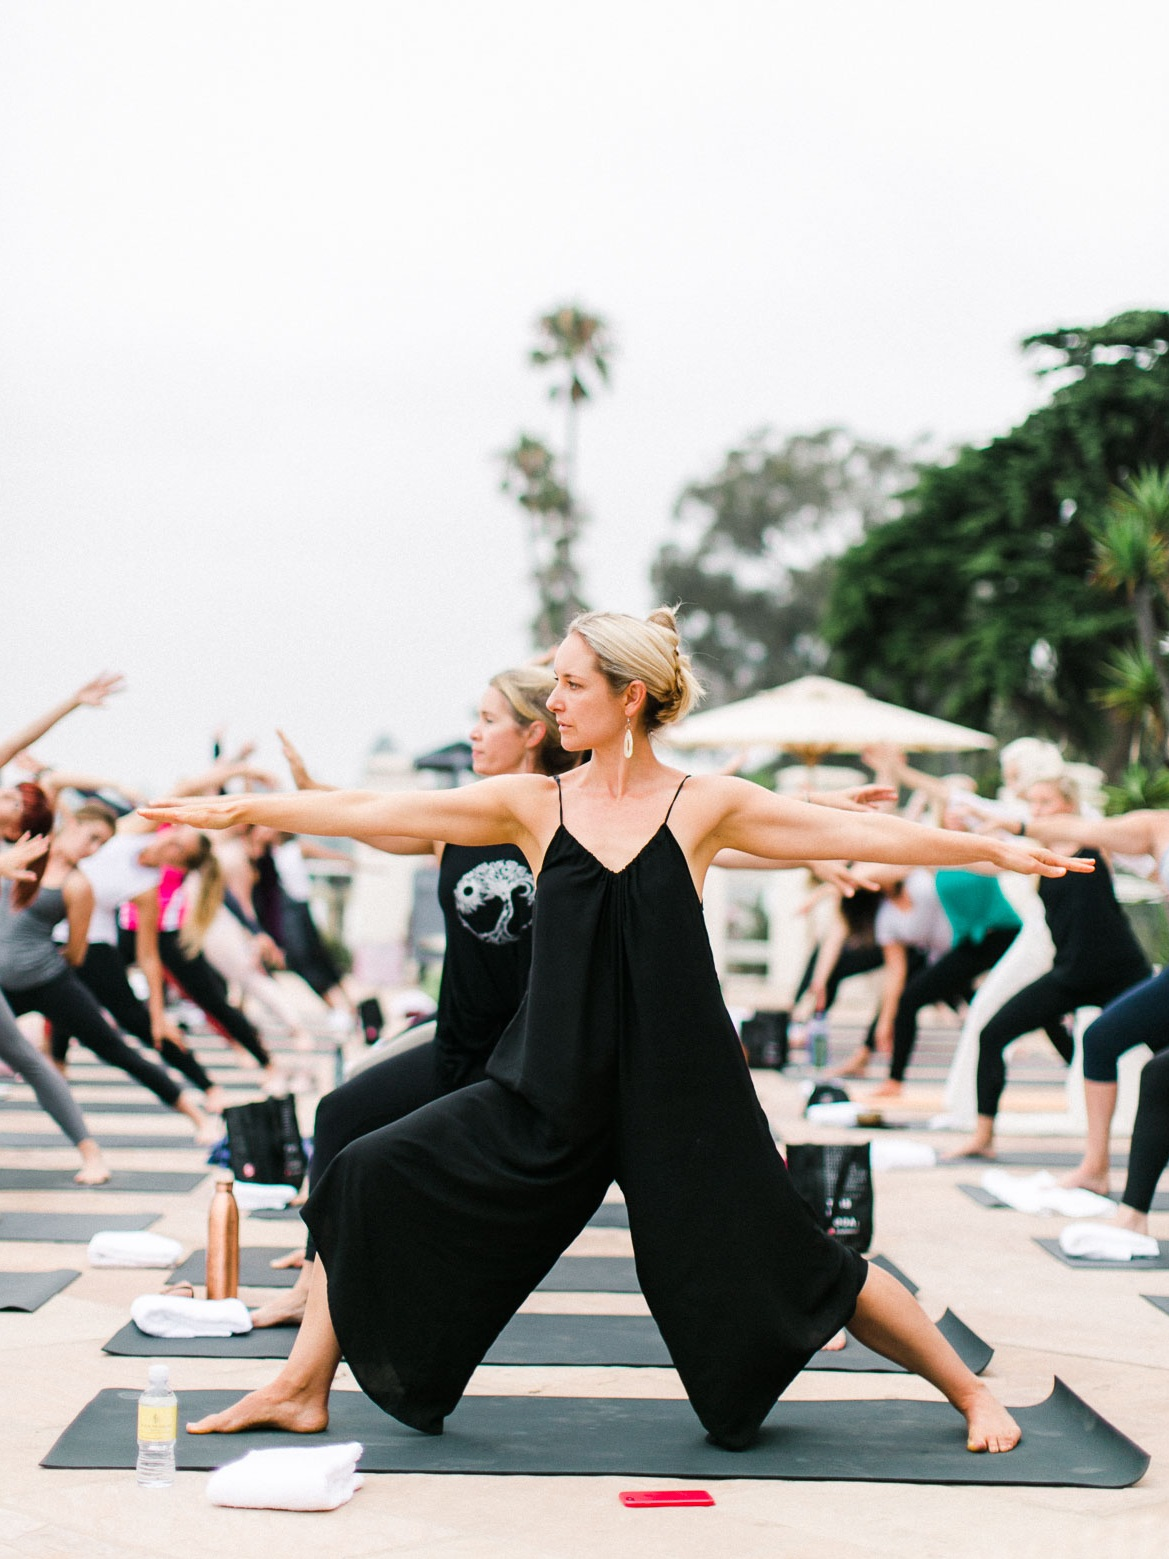 Sattva Soul Yoga Workshop + Four Seasons Biltmore + LuLulemon ©Rhianna Mercier